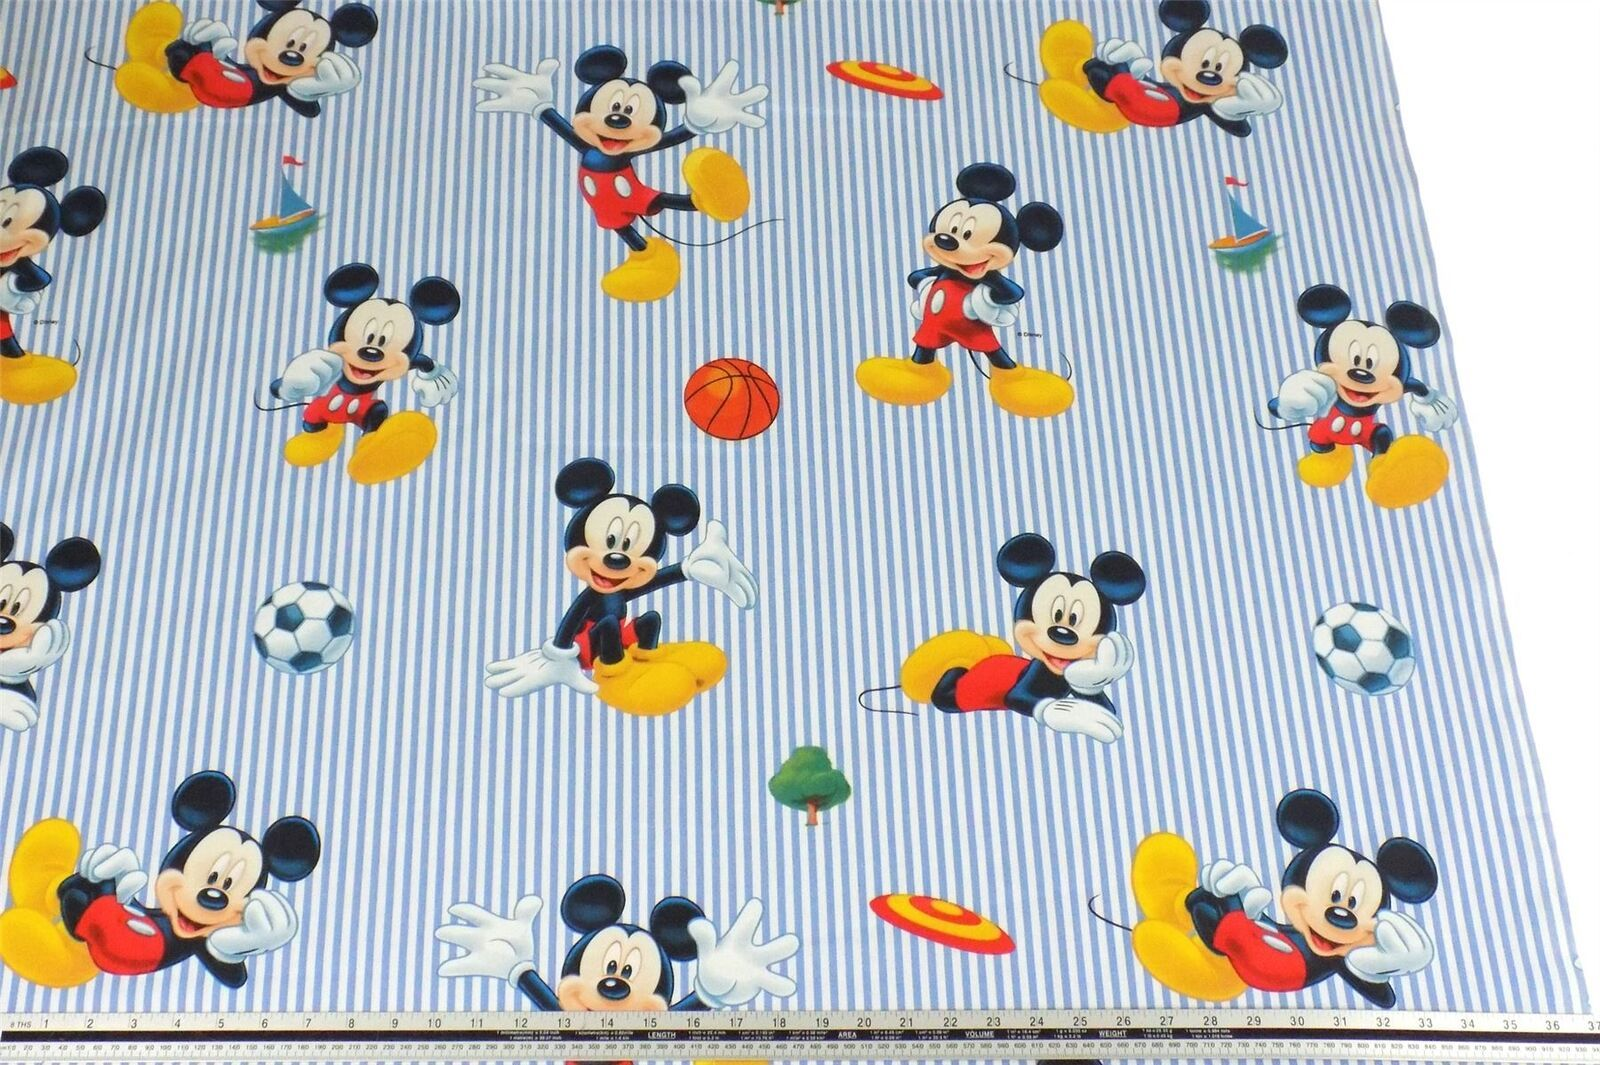 Disney Blue Striped Mickey Mouse Football 100% Cotton Fabric Material *3 Sizes*